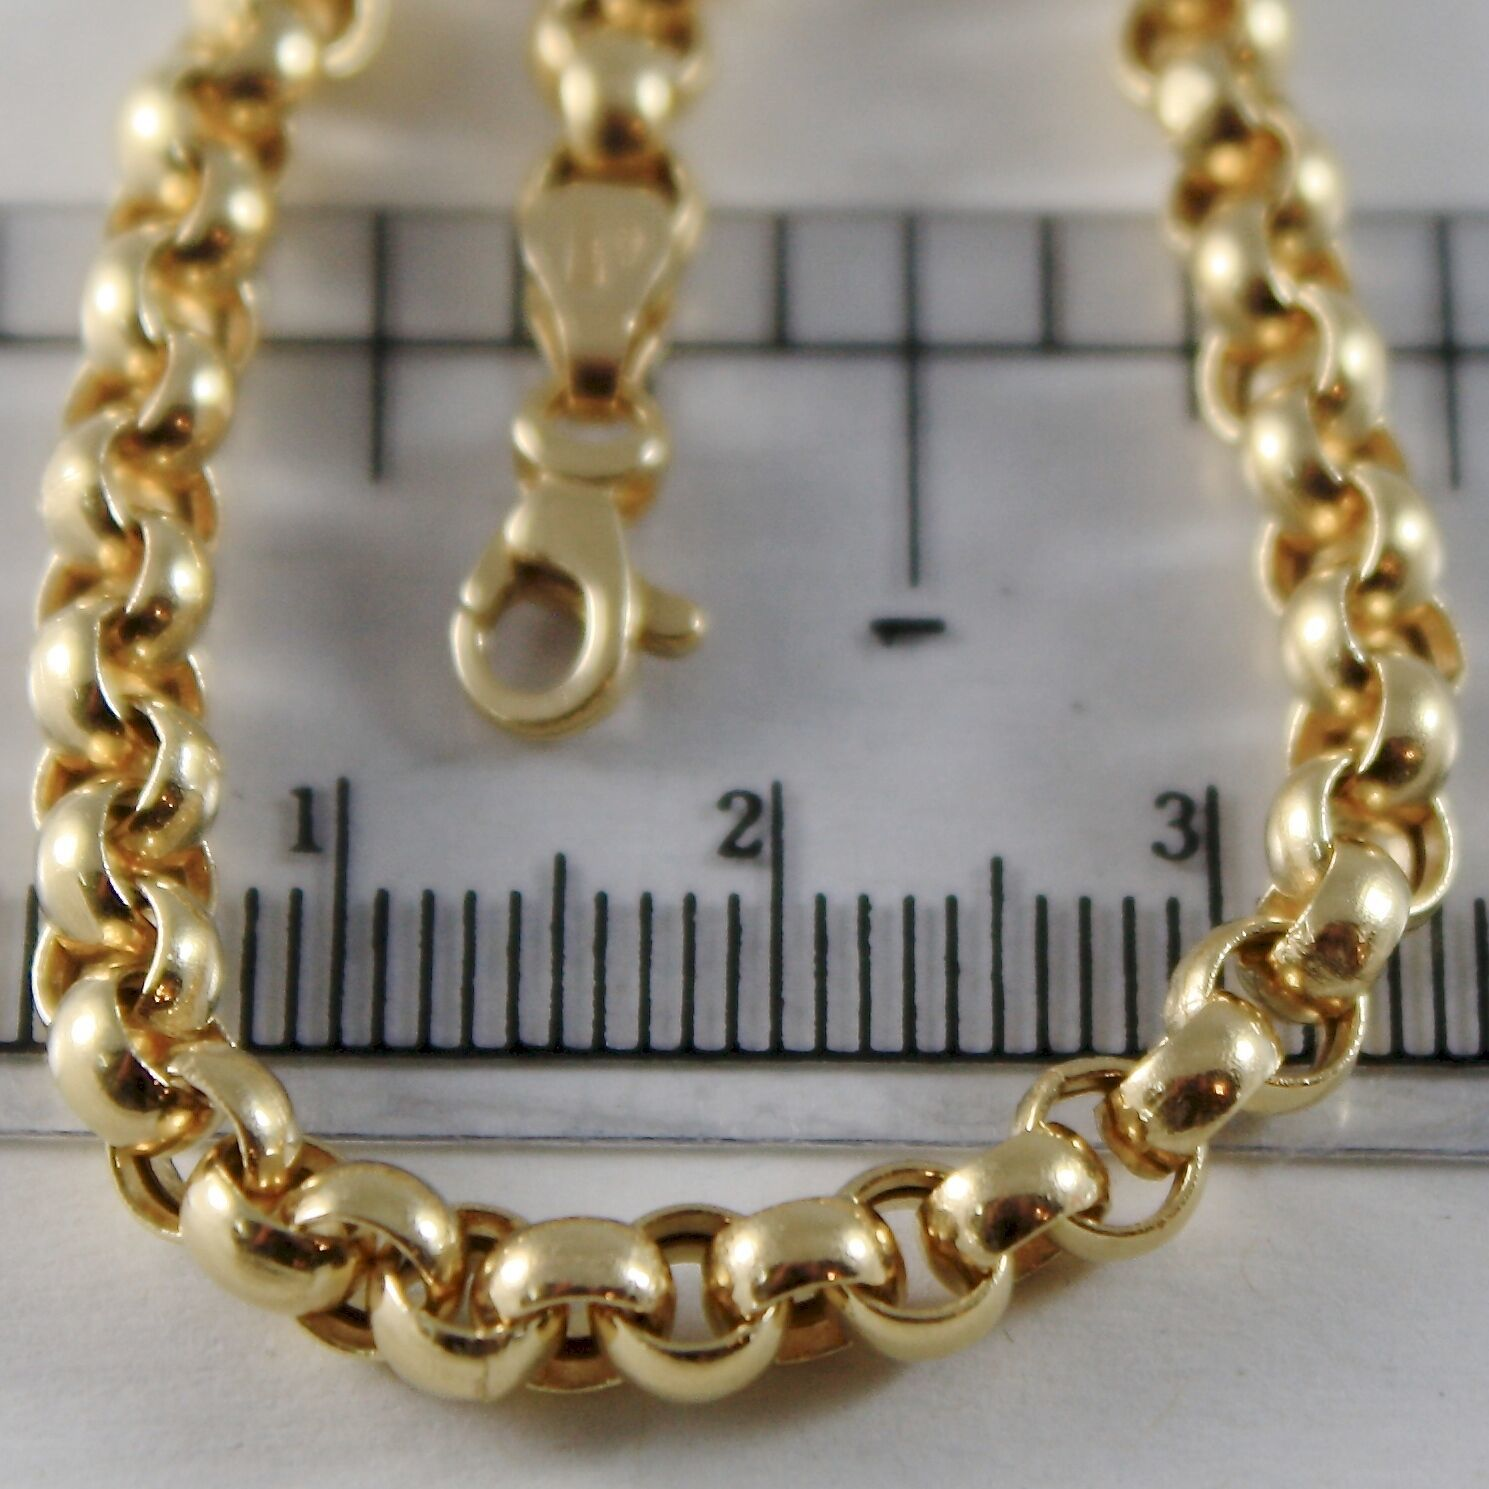 18K YELLOW GOLD CHAIN 19.70 IN, BIG ROUND CIRCLE ROLO LINK, 4 MM MADE IN ITALY